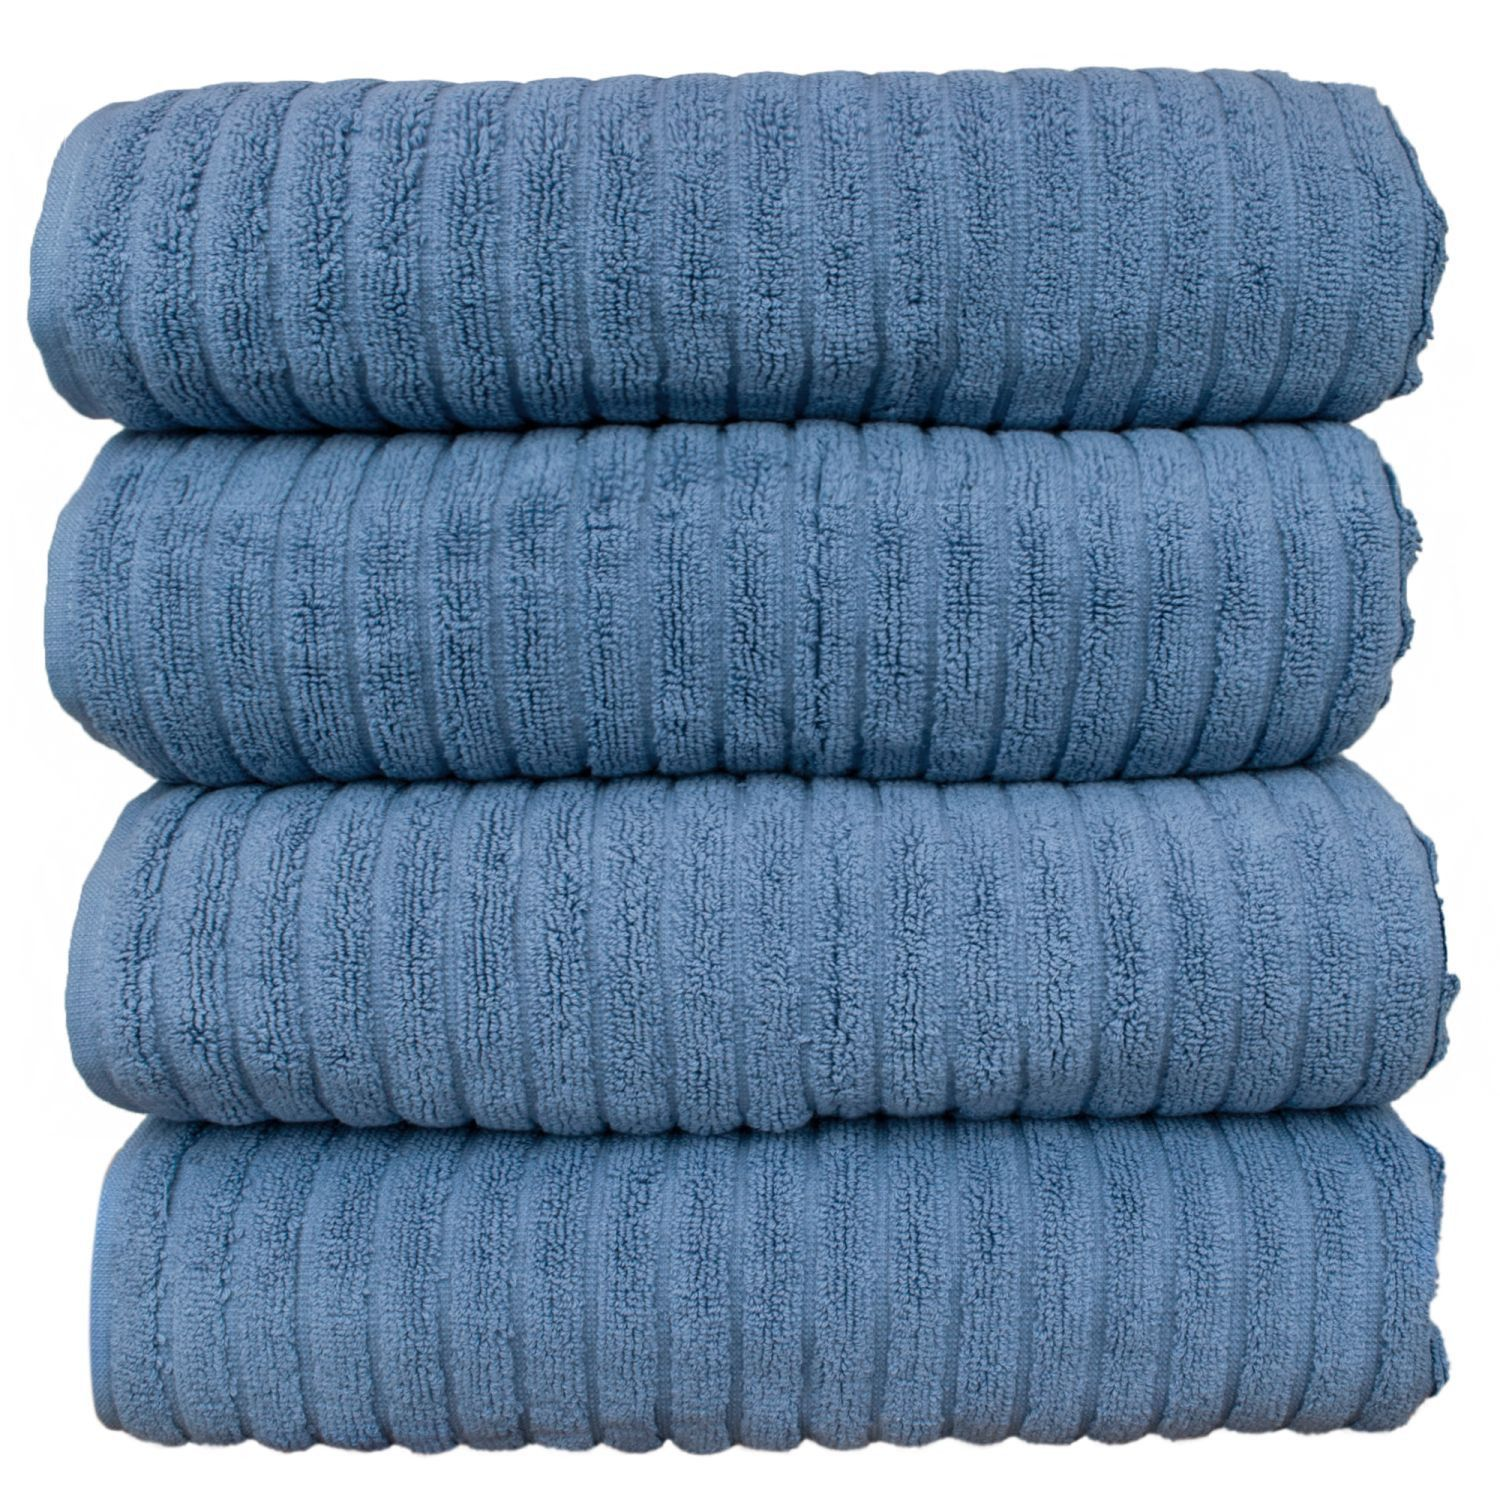 Luxury Hotel & Spa Towel 100% Genuine Turkish Cotton Bath Towels ...